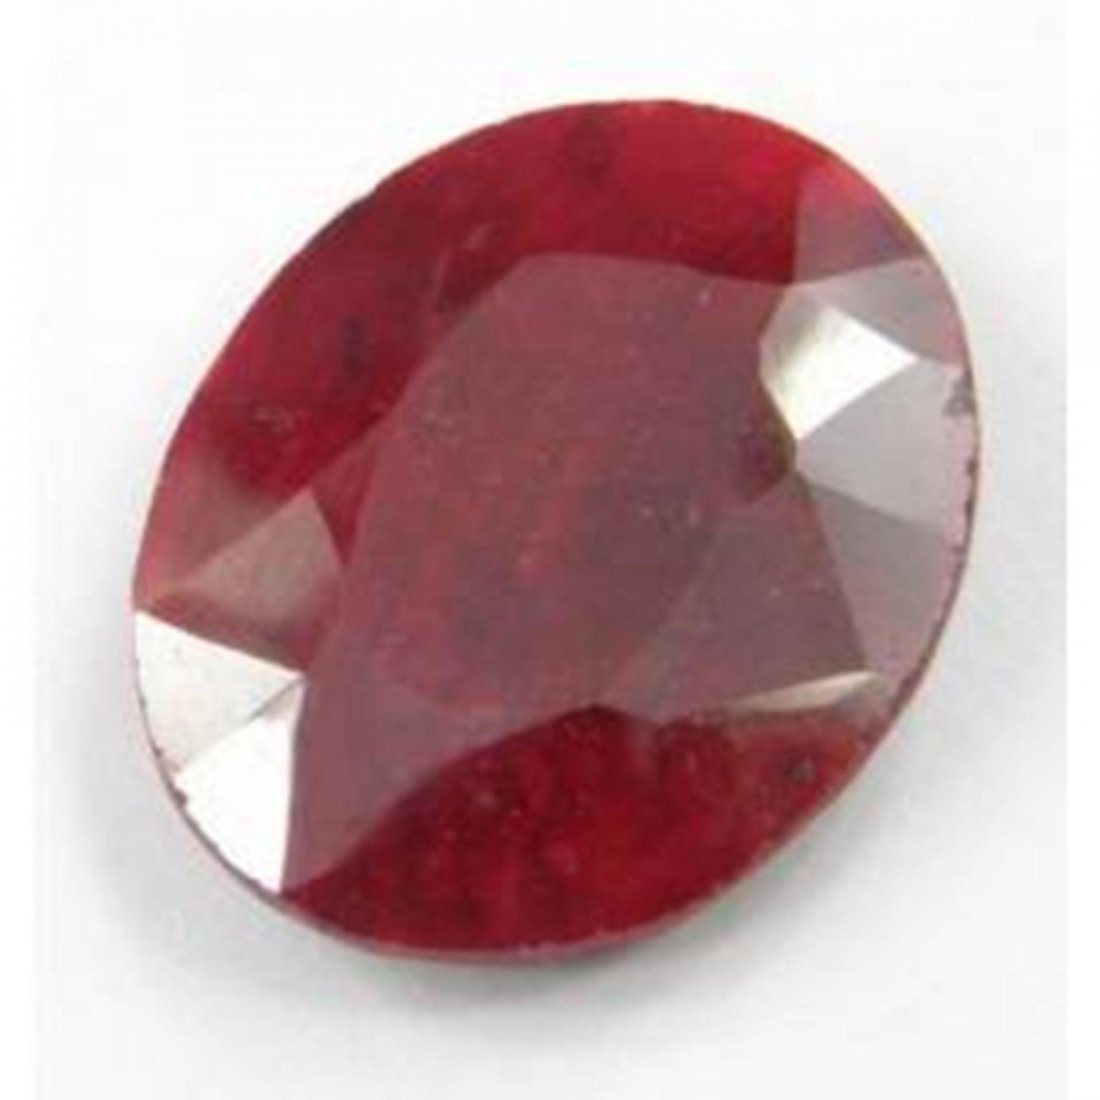 11Q: A 3 ct. Ruby Gemstone